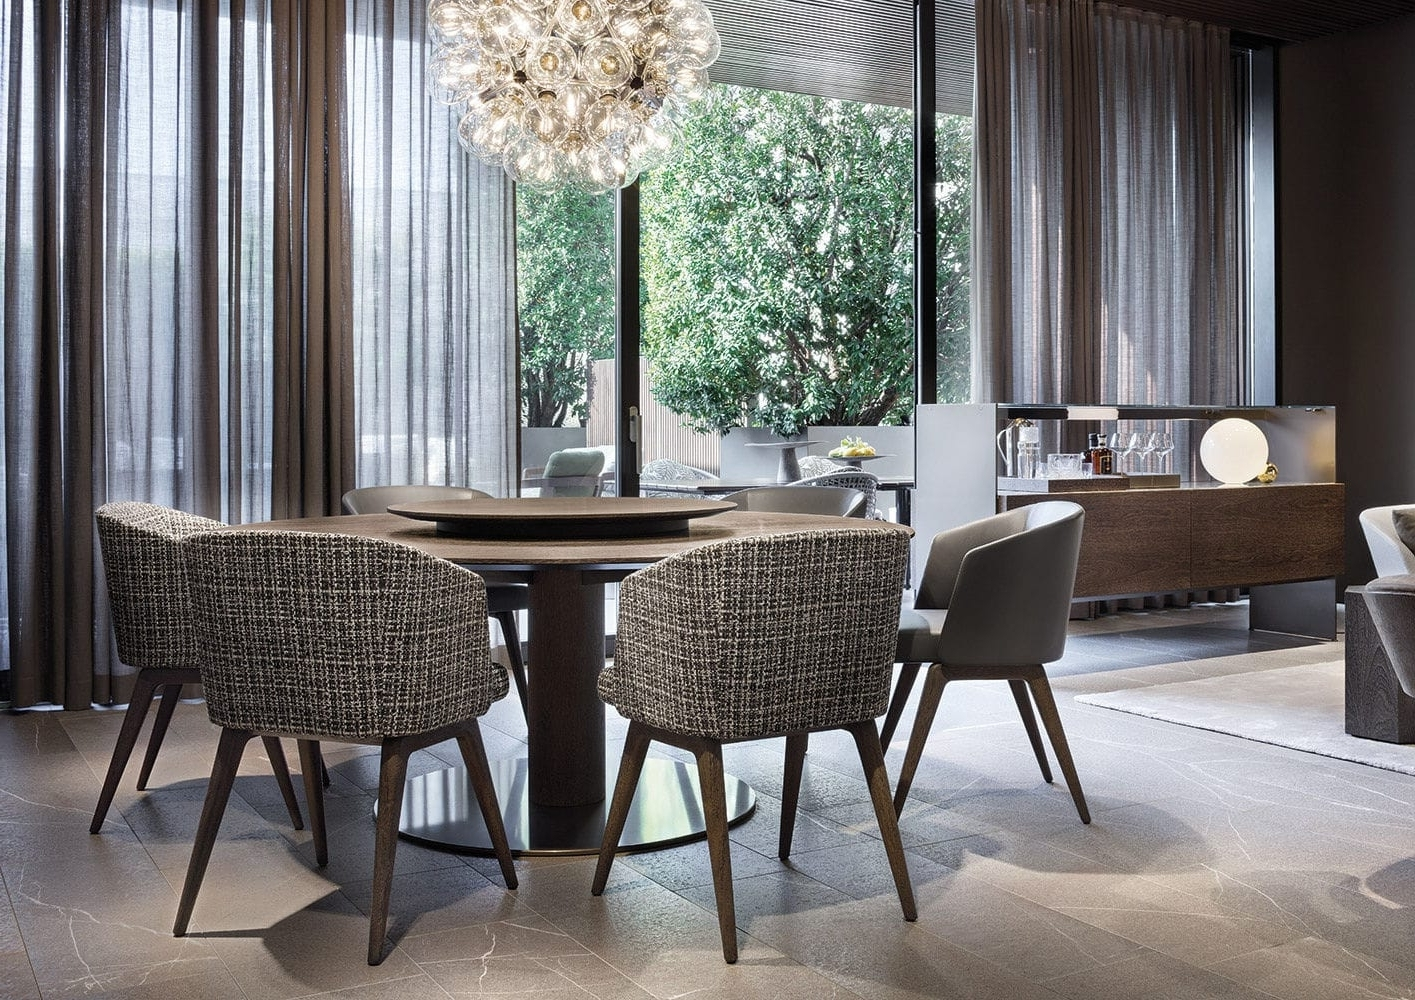 Bellagio Dining Tables Intended For Fashionable Contemporary Dining Table / Wooden / Metal / Rectangular – Bellagio (Gallery 10 of 25)